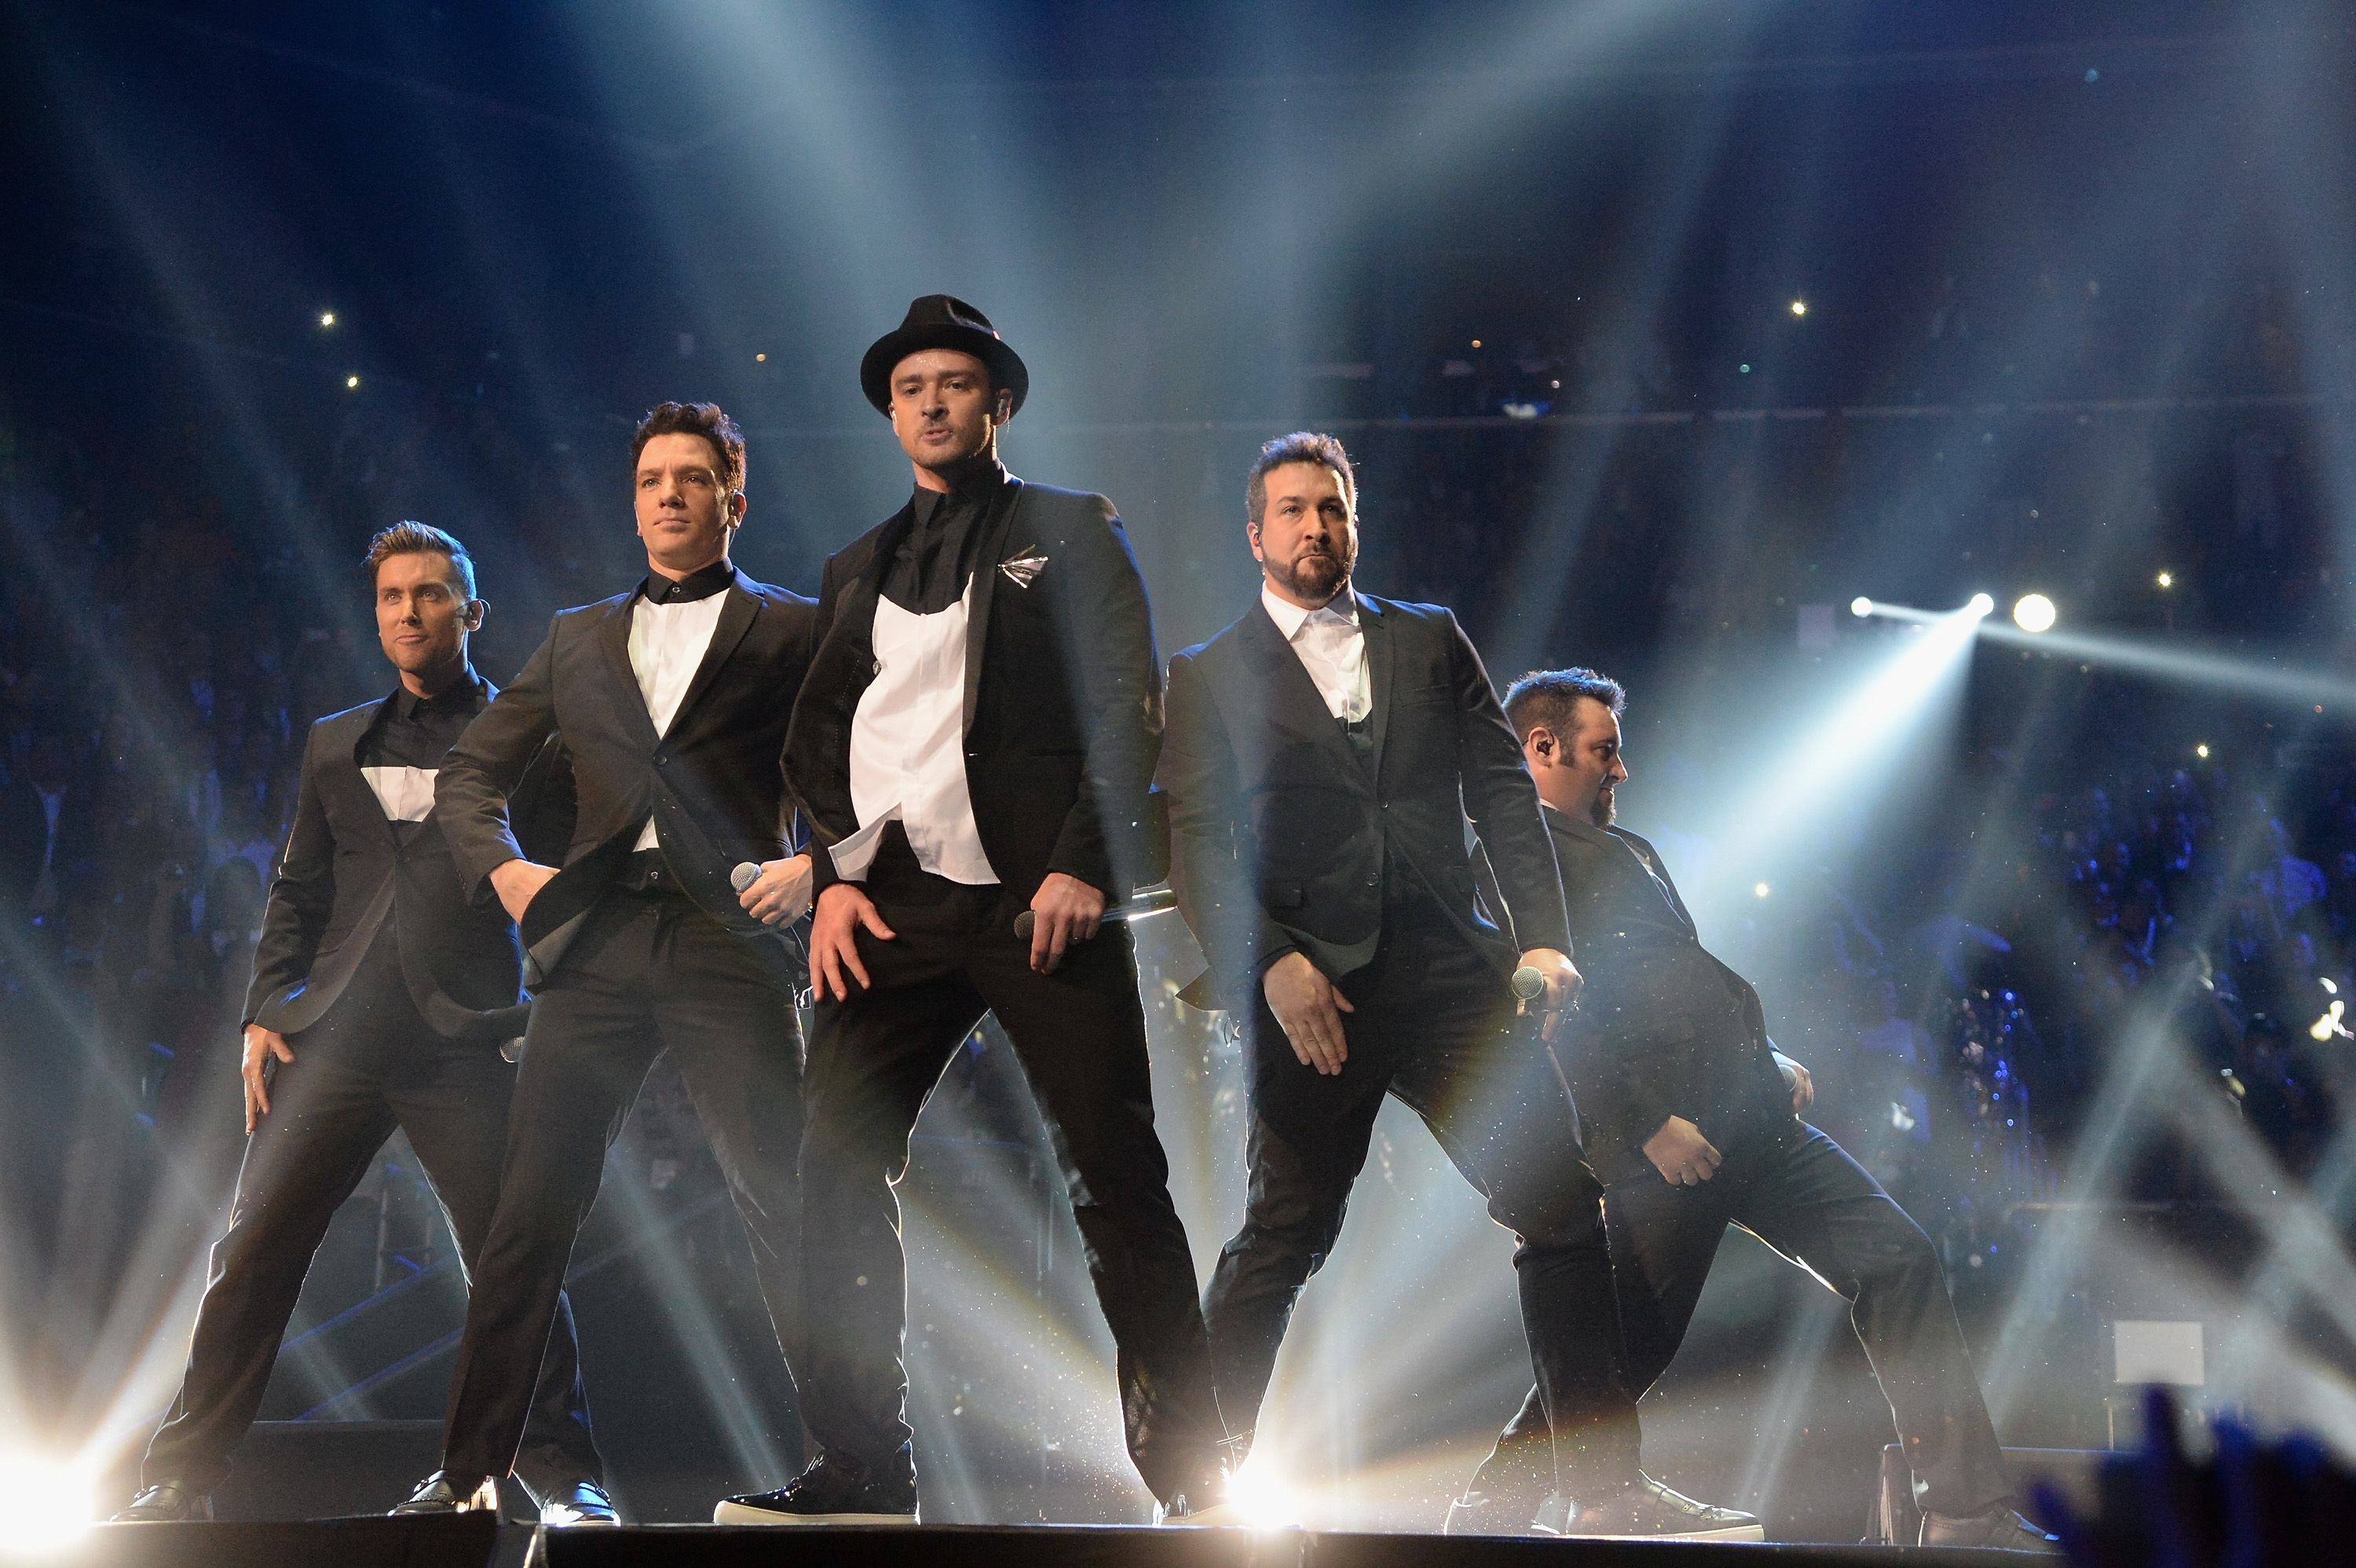 Lance Bass, JC Chasez, Justin Timberlake, Joey Fatone and Chris Kirkpatrick of *NSync perform during the 2013 MTV Video Music Awards at the Barclays Center in Brooklyn, New York on Aug. 25, 2013.